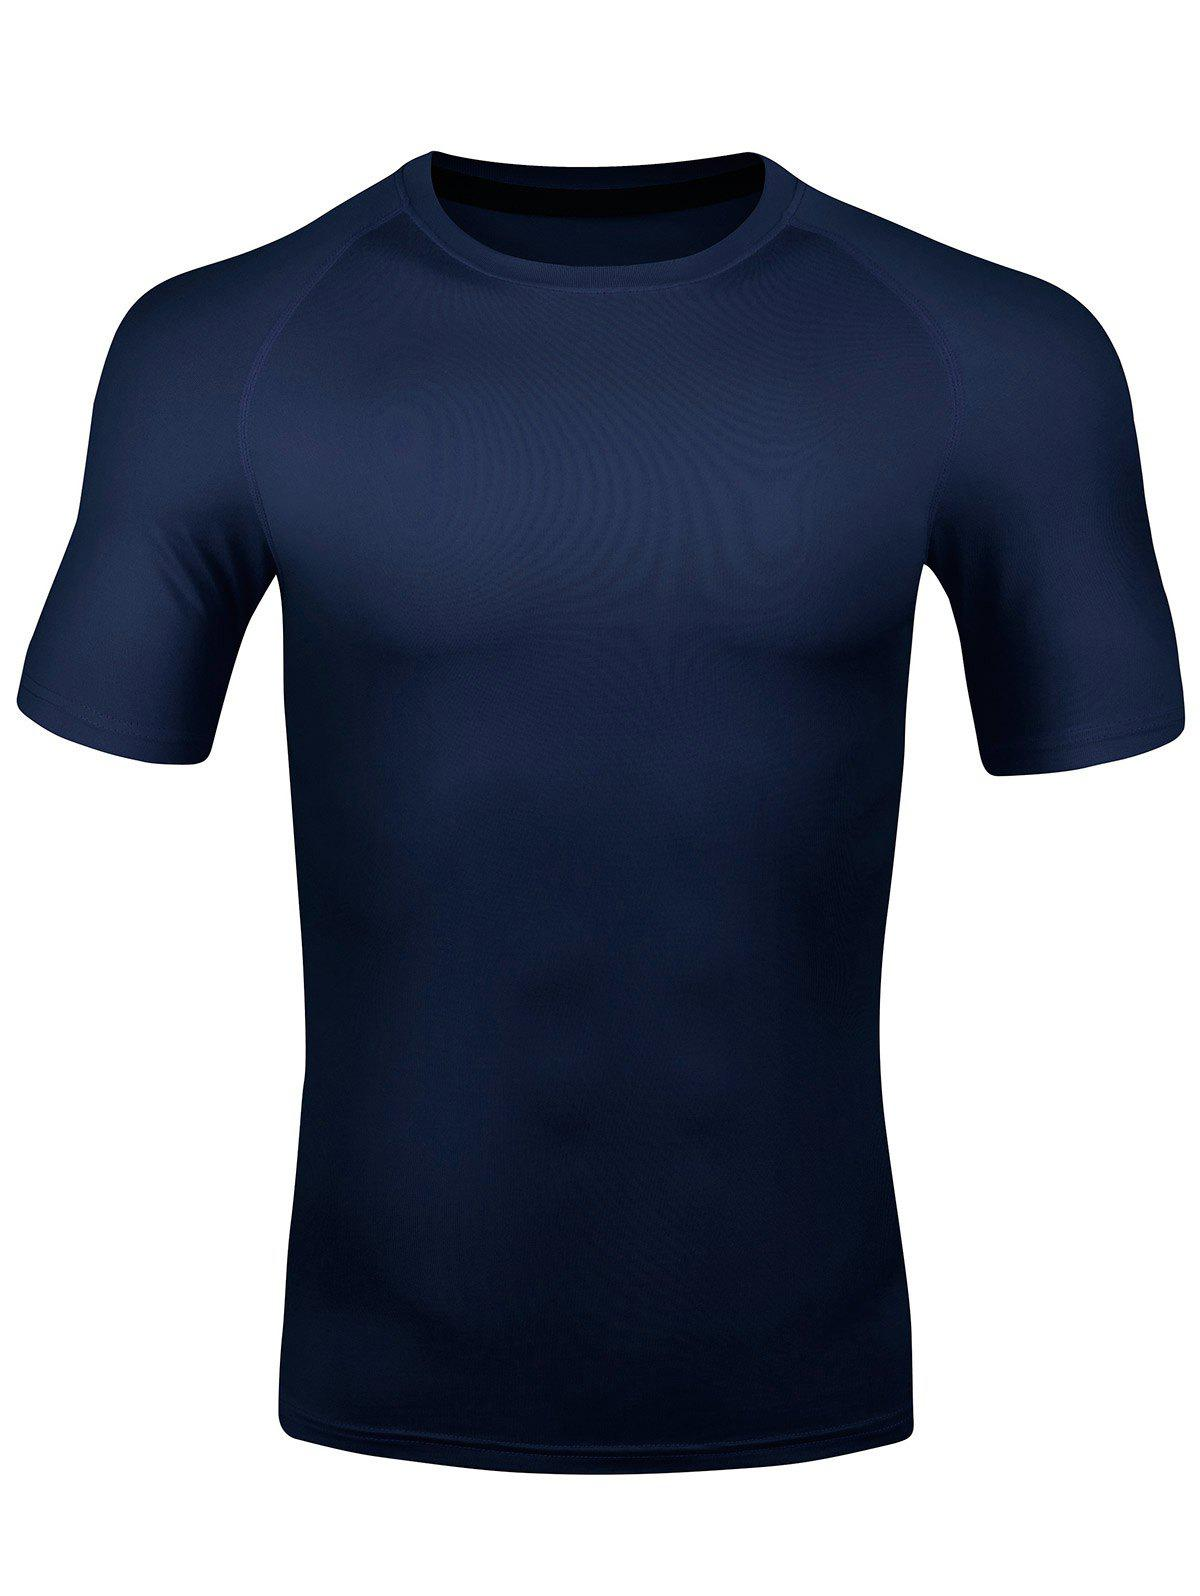 Online Short Sleeve Quick Dry Stretchy Fitness T-shirt